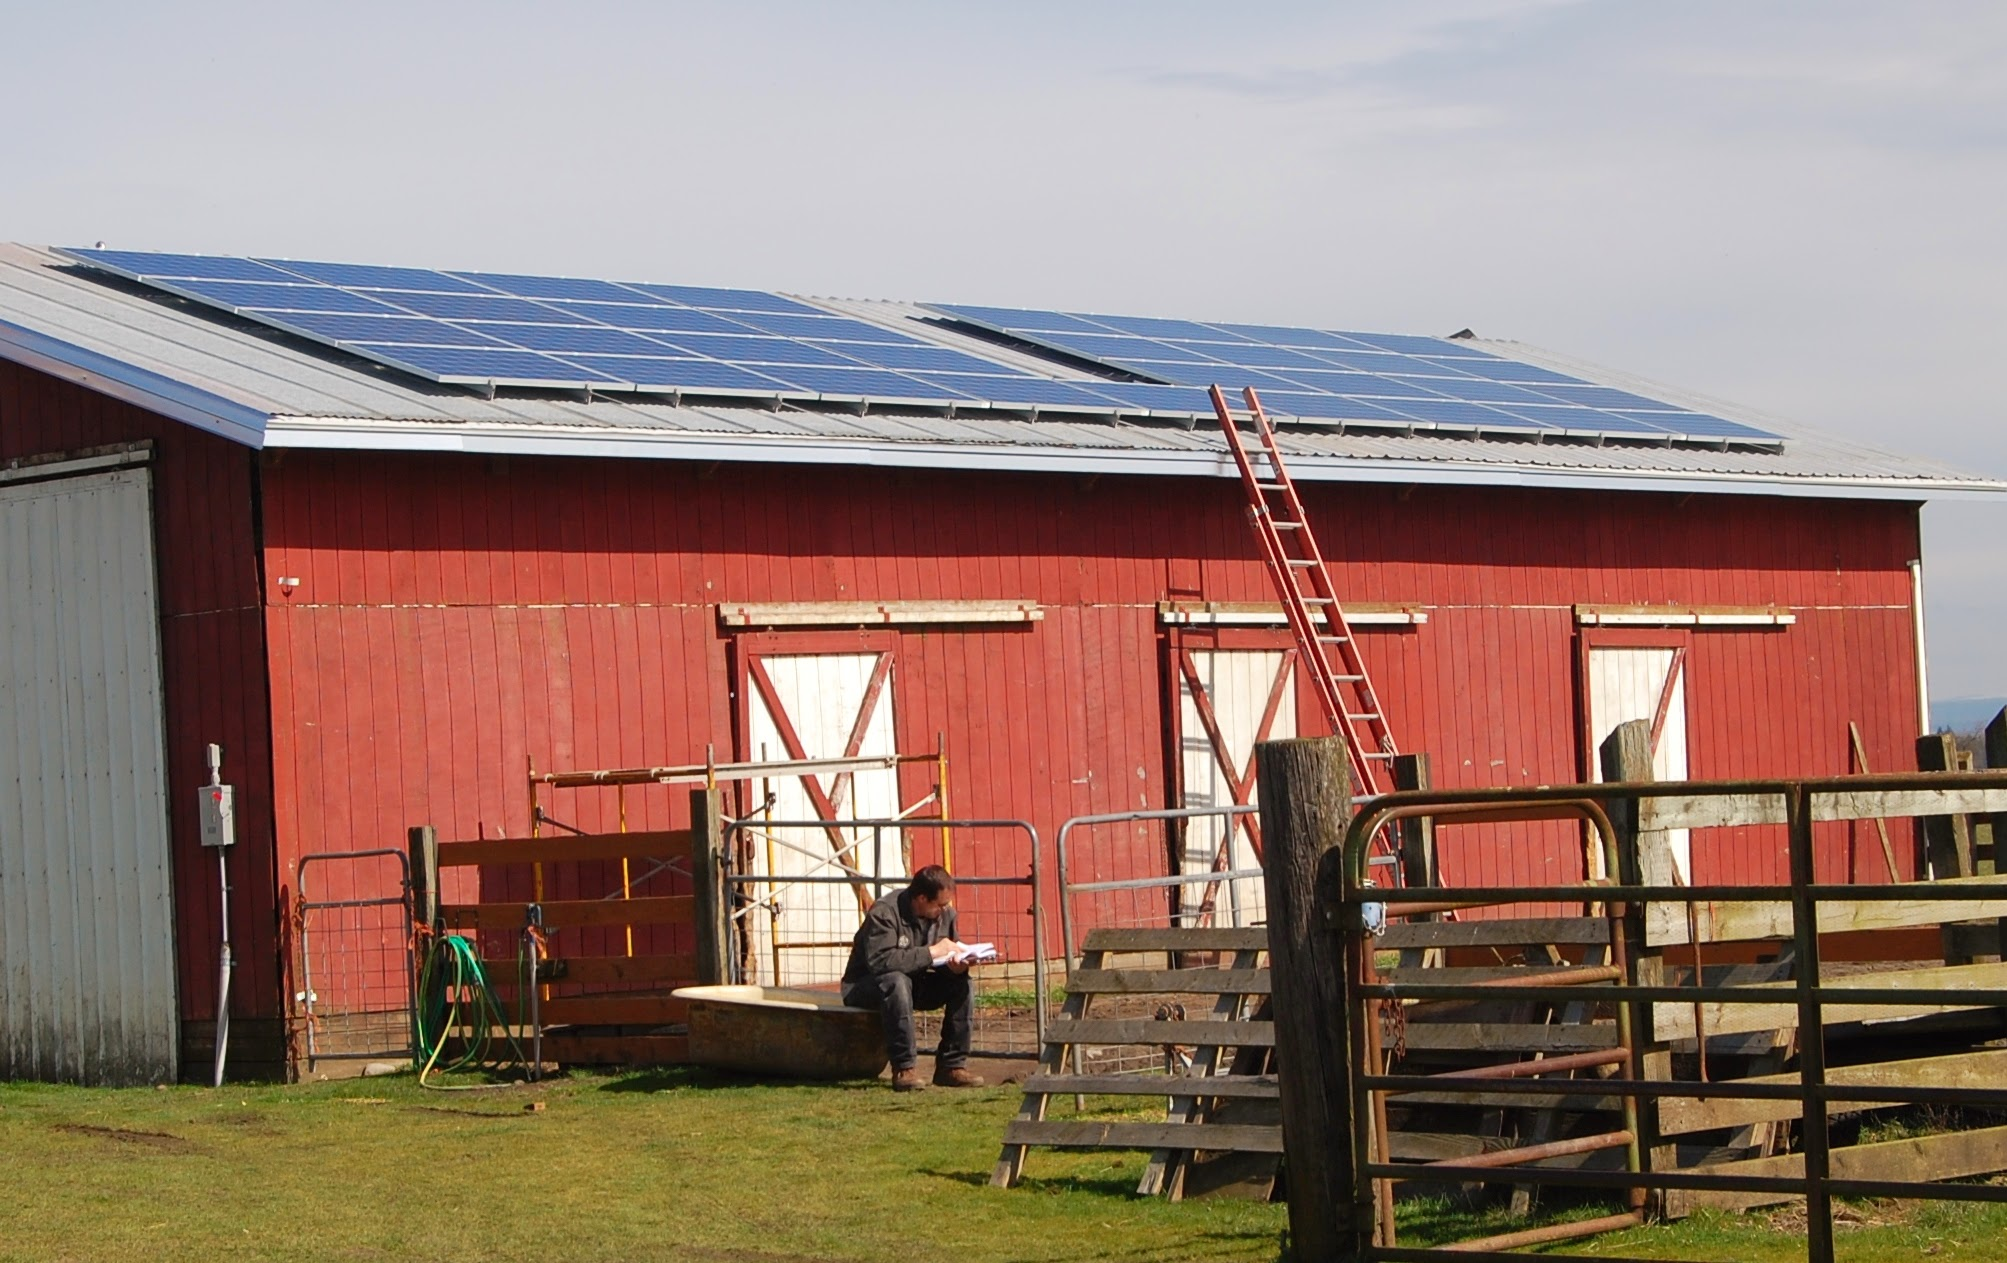 March, 2013.  PV panels completed on horse barn.